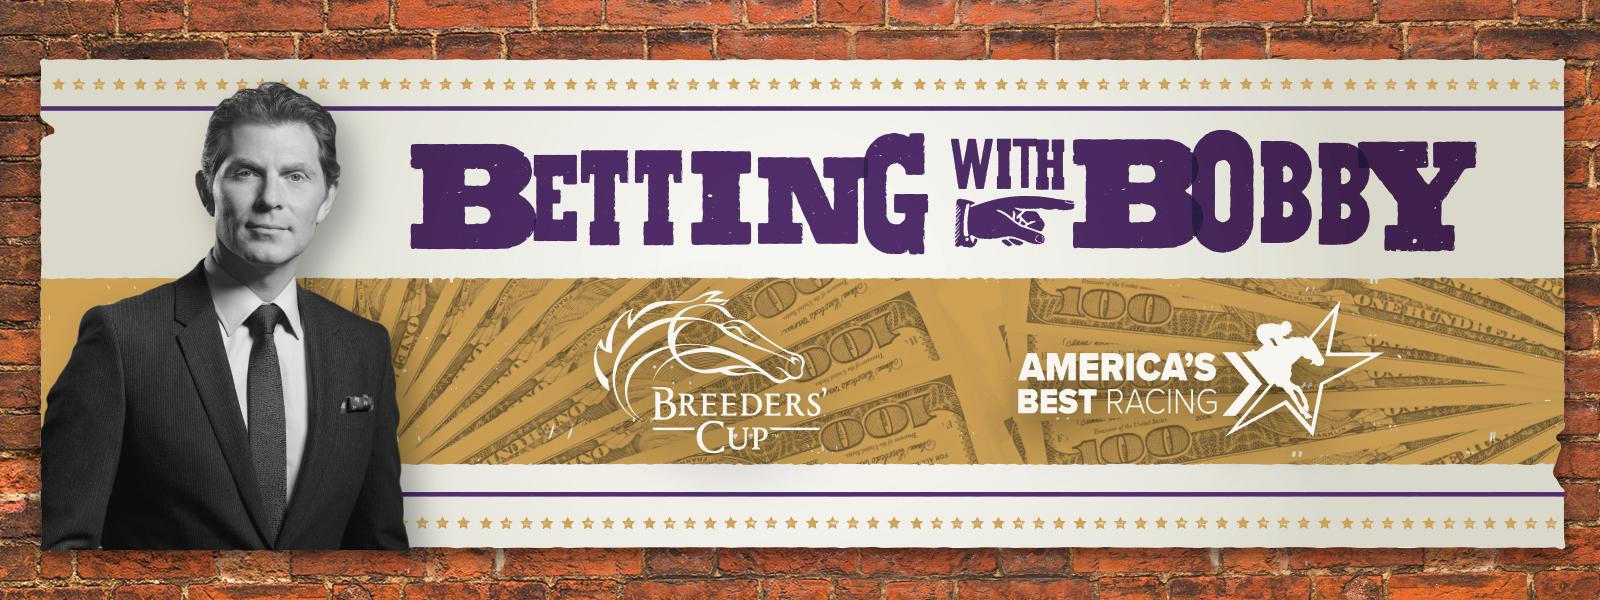 Betting With Bobby Flay Breeders Cup Charity Challenge